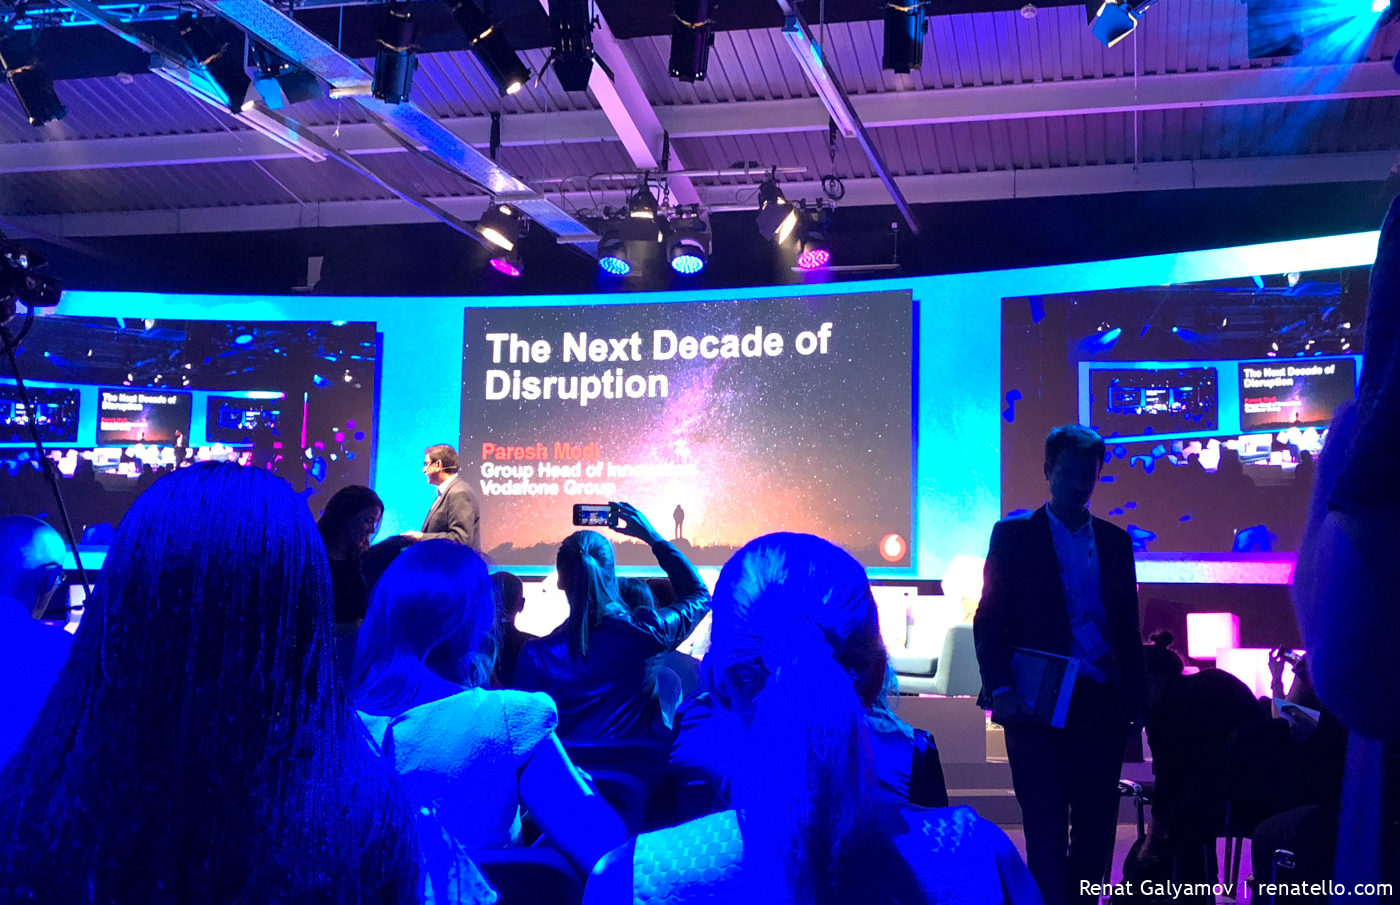 The Next Decade of Disruption at Unbound London